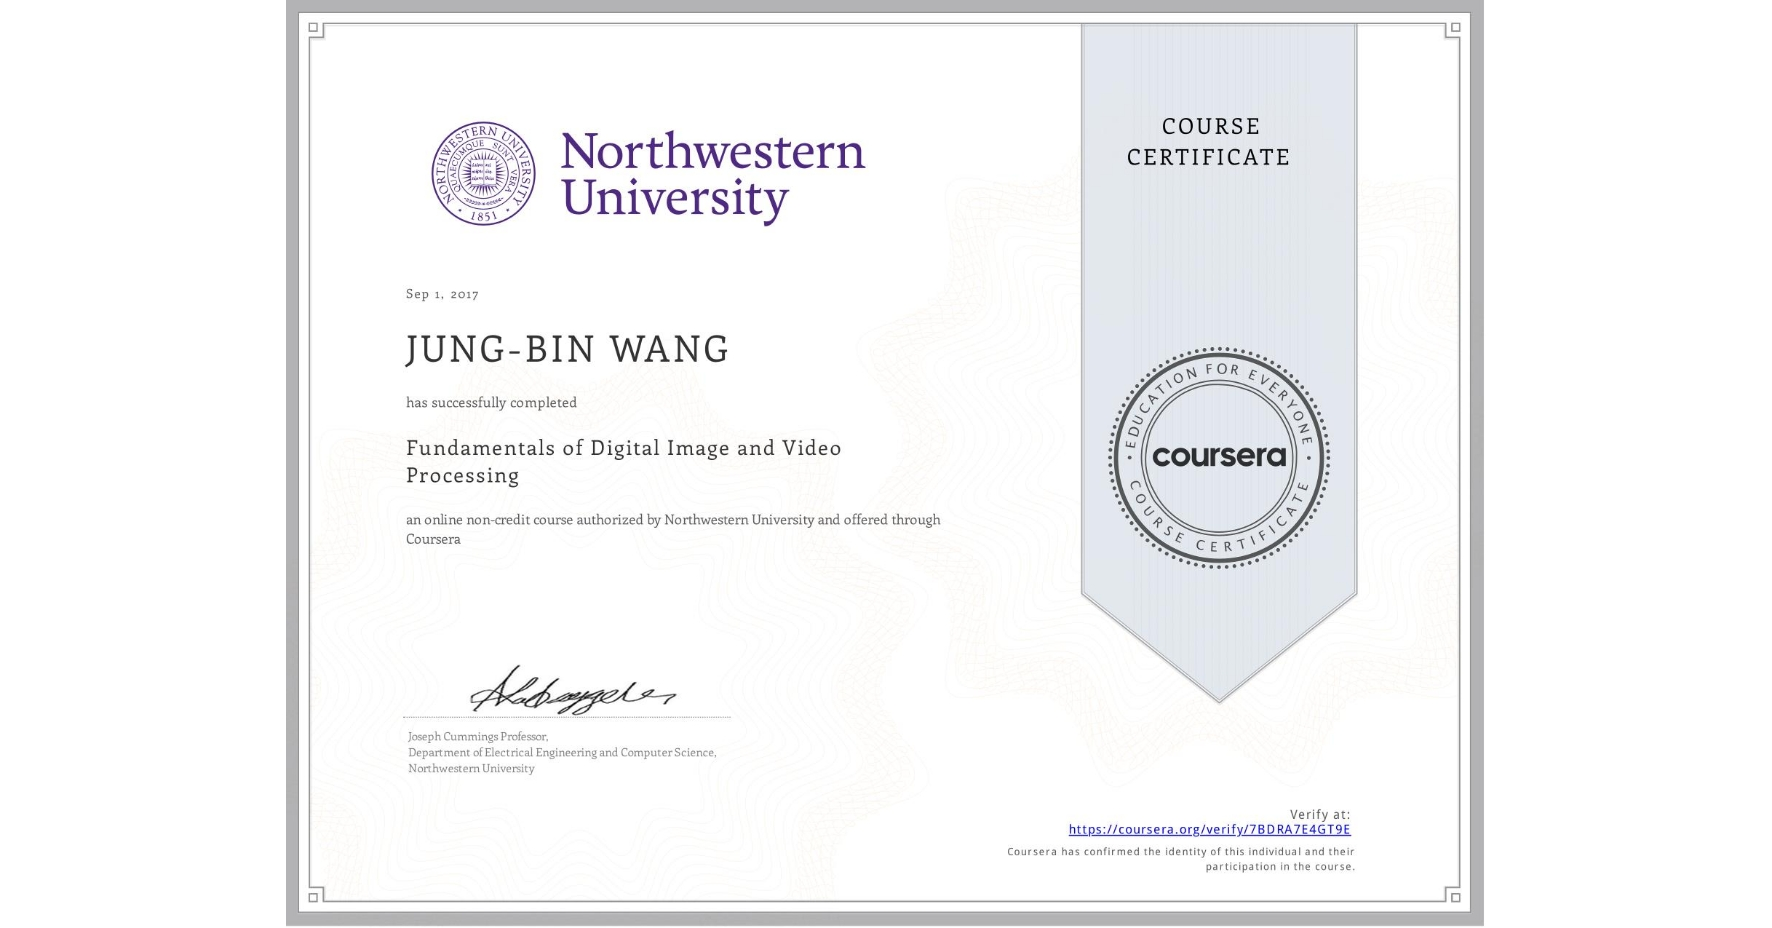 View certificate for JUNG-BIN WANG, Fundamentals of Digital Image and Video Processing, an online non-credit course authorized by Northwestern University and offered through Coursera